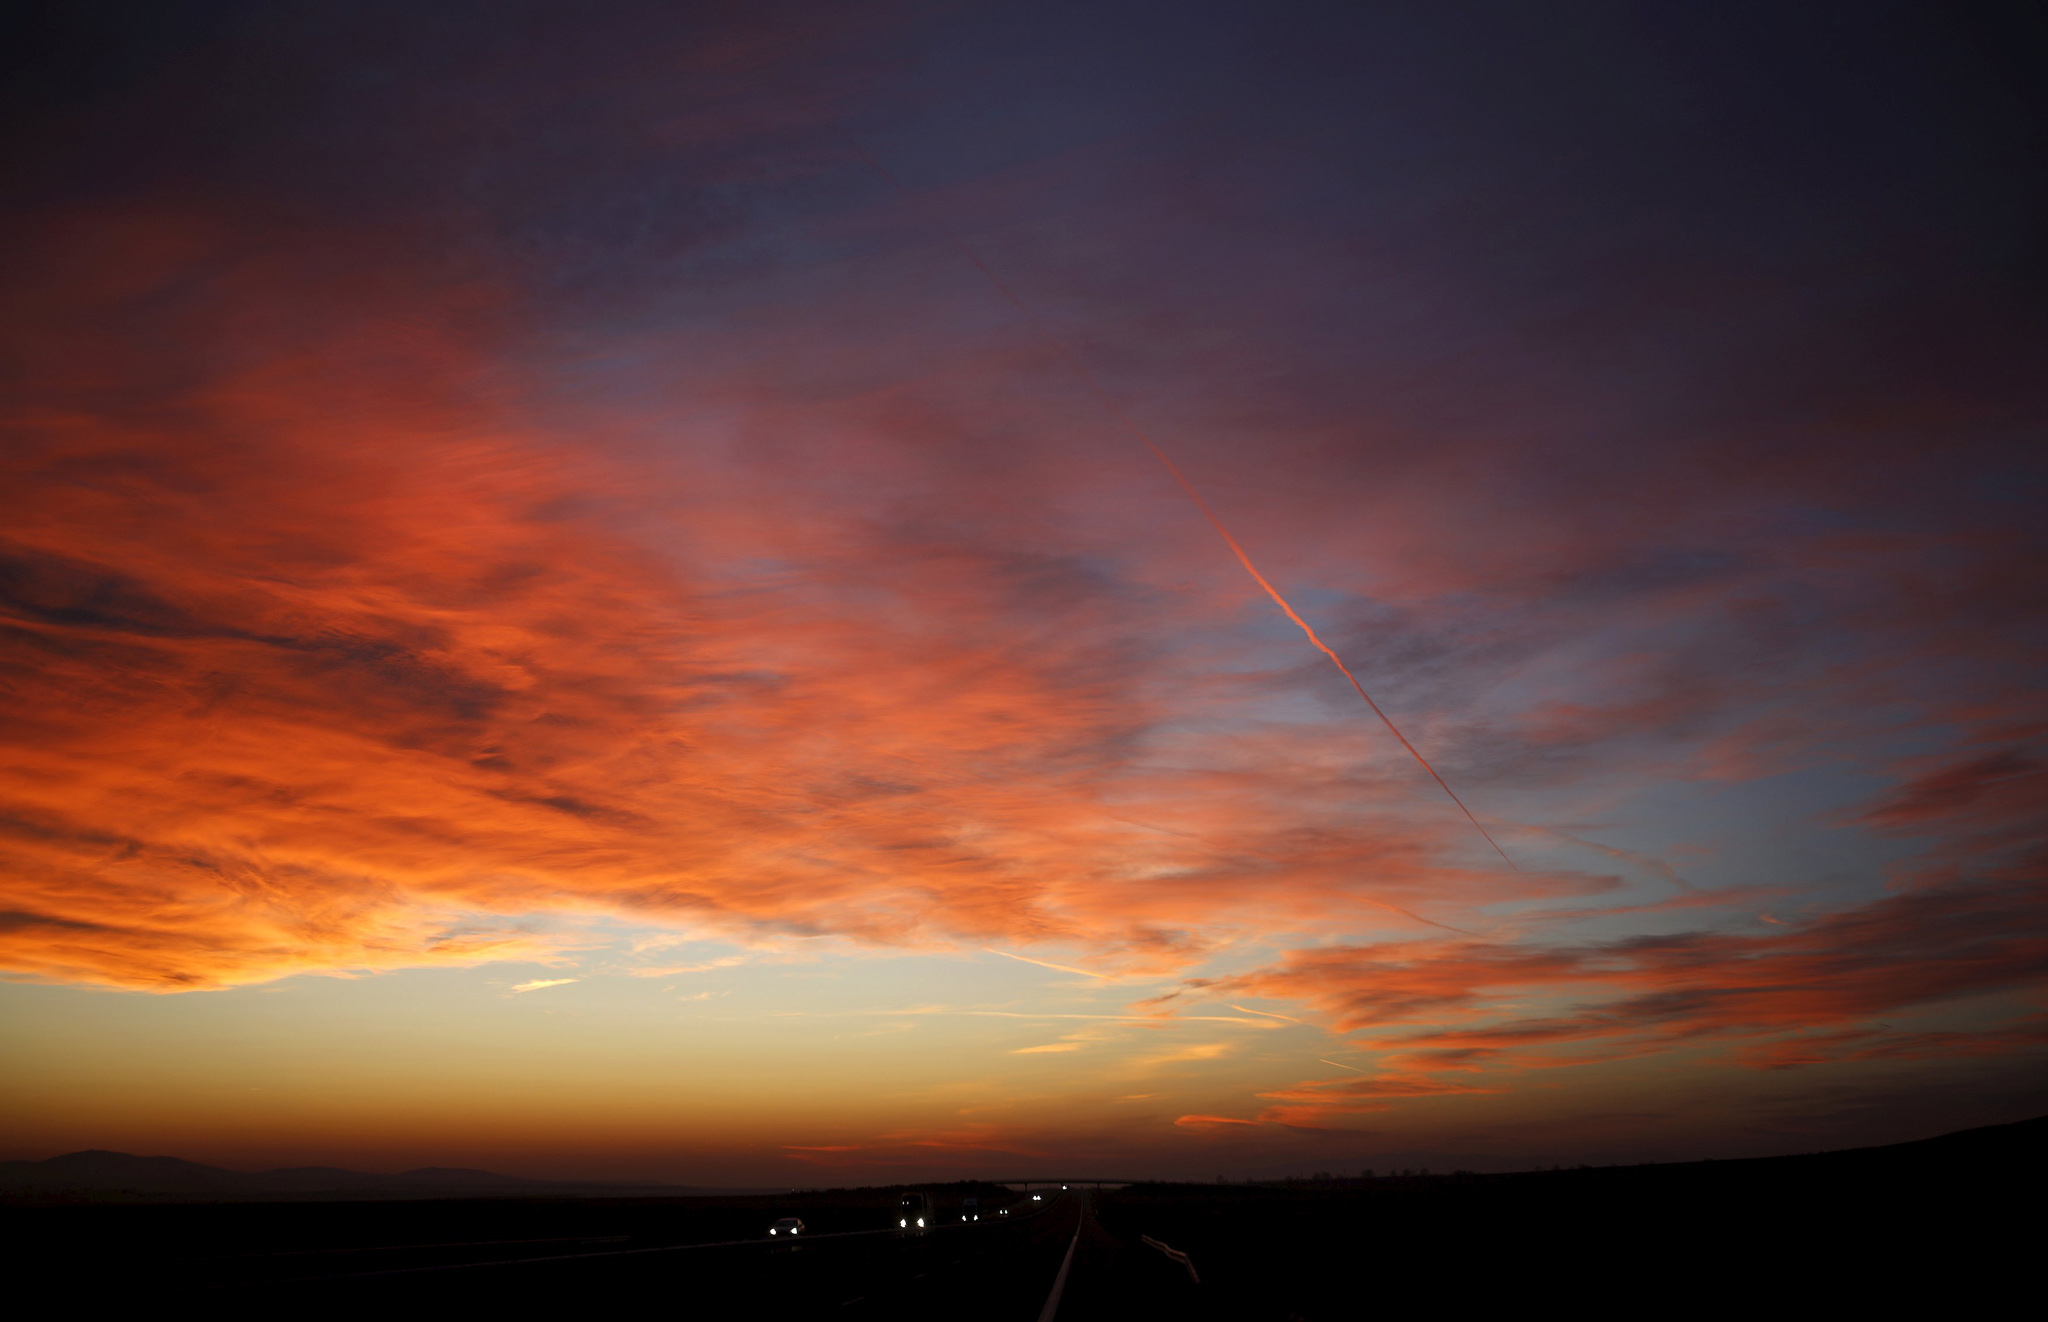 Vehicles are seen on a highway as the sun sets near the city of Stara Zagora...Vehicles are seen on a highway as the sun sets near the city of Stara Zagora, Bulgaria, February 3, 2016. REUTERS/Stoyan Nenov